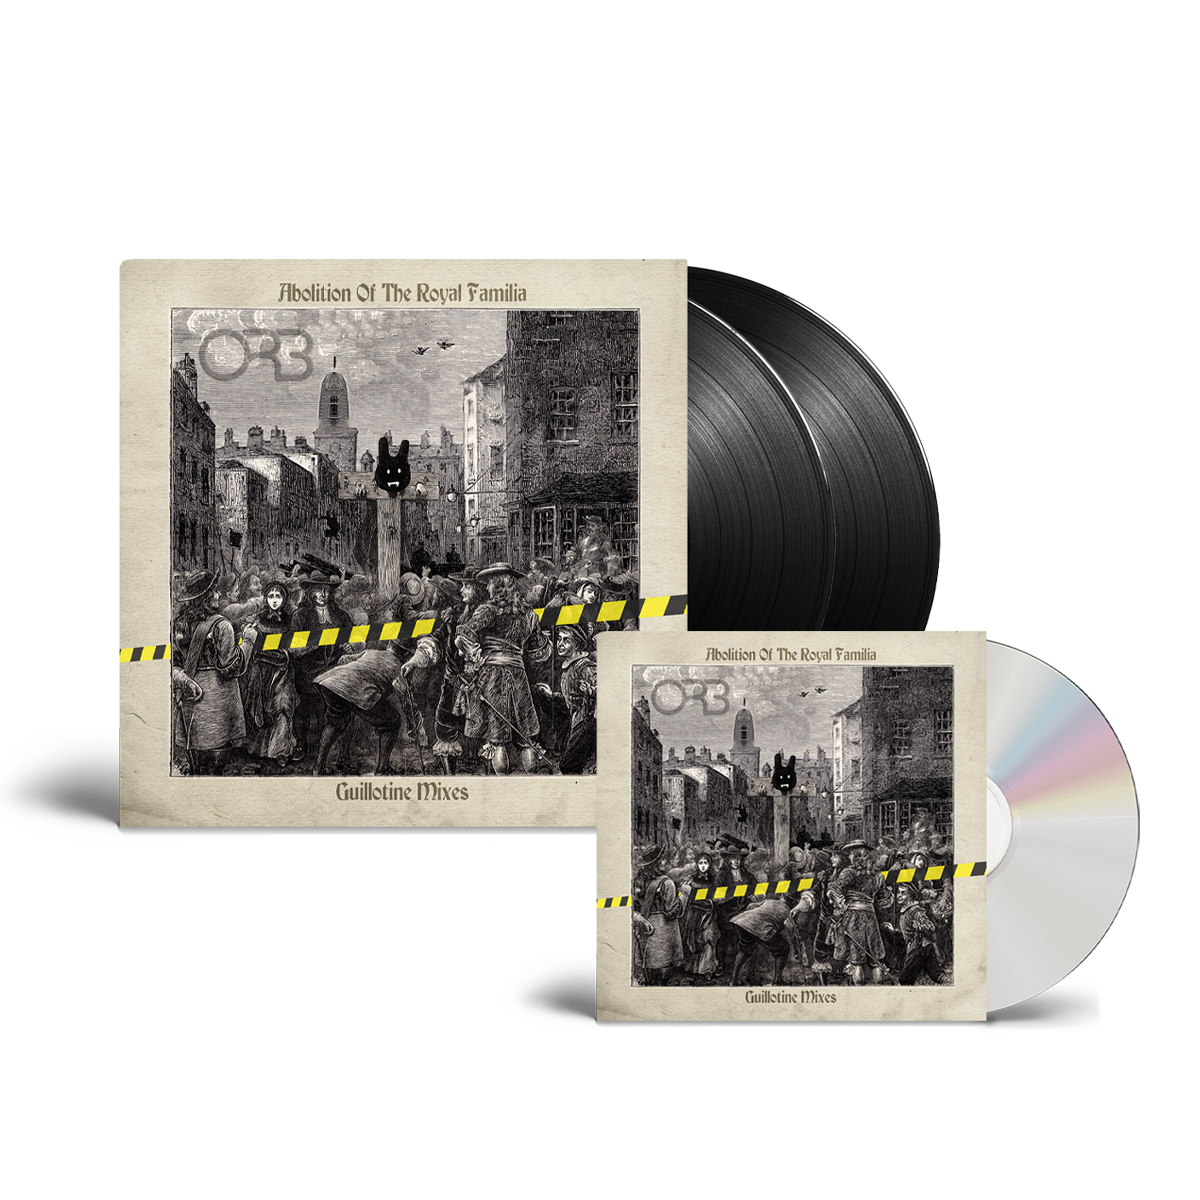 Buy Online The ORB - Abolition Of The Royal Familia - Guillotine Mixes CD + Black Double Vinyl